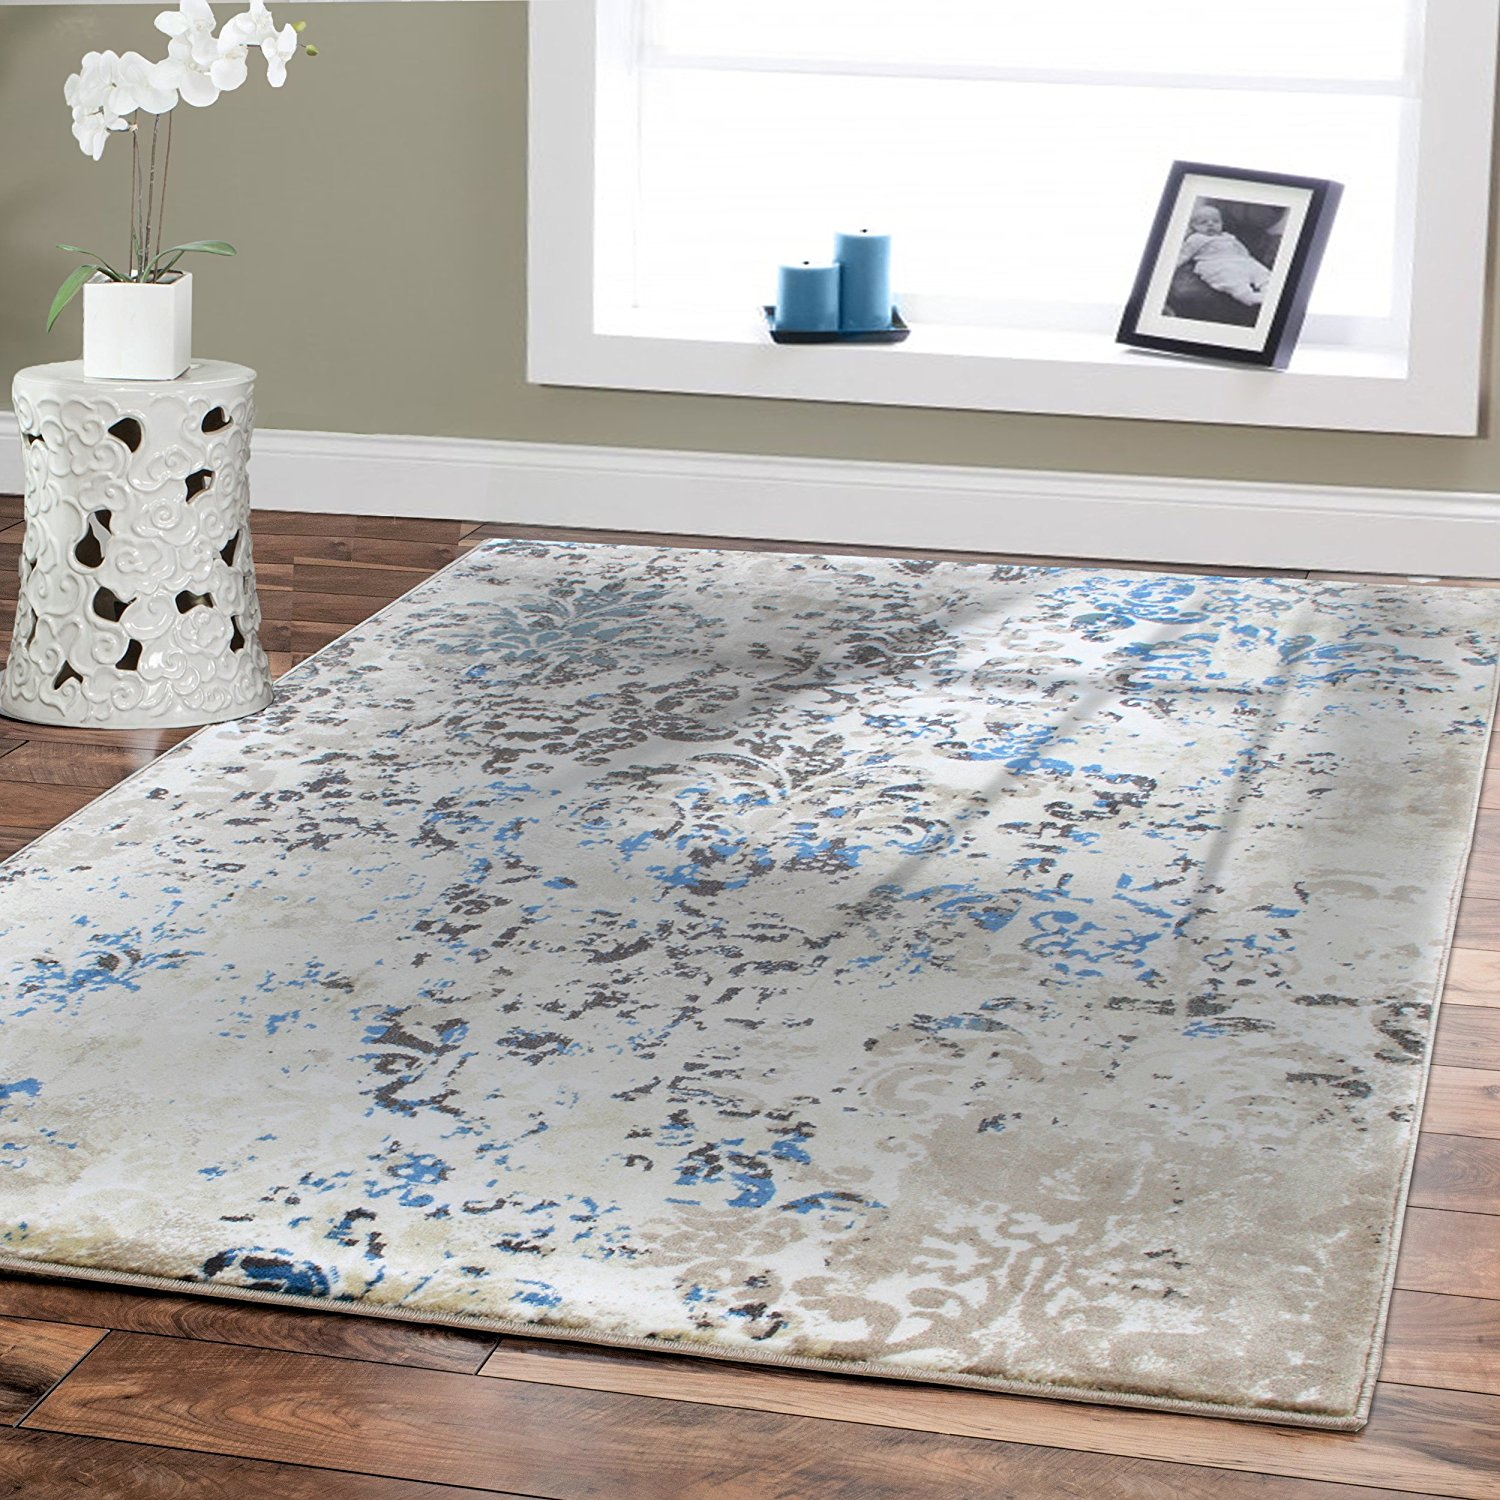 luxury high quality rugs for living room 5x8 cream blue dynamix 8x10 Area Rugs